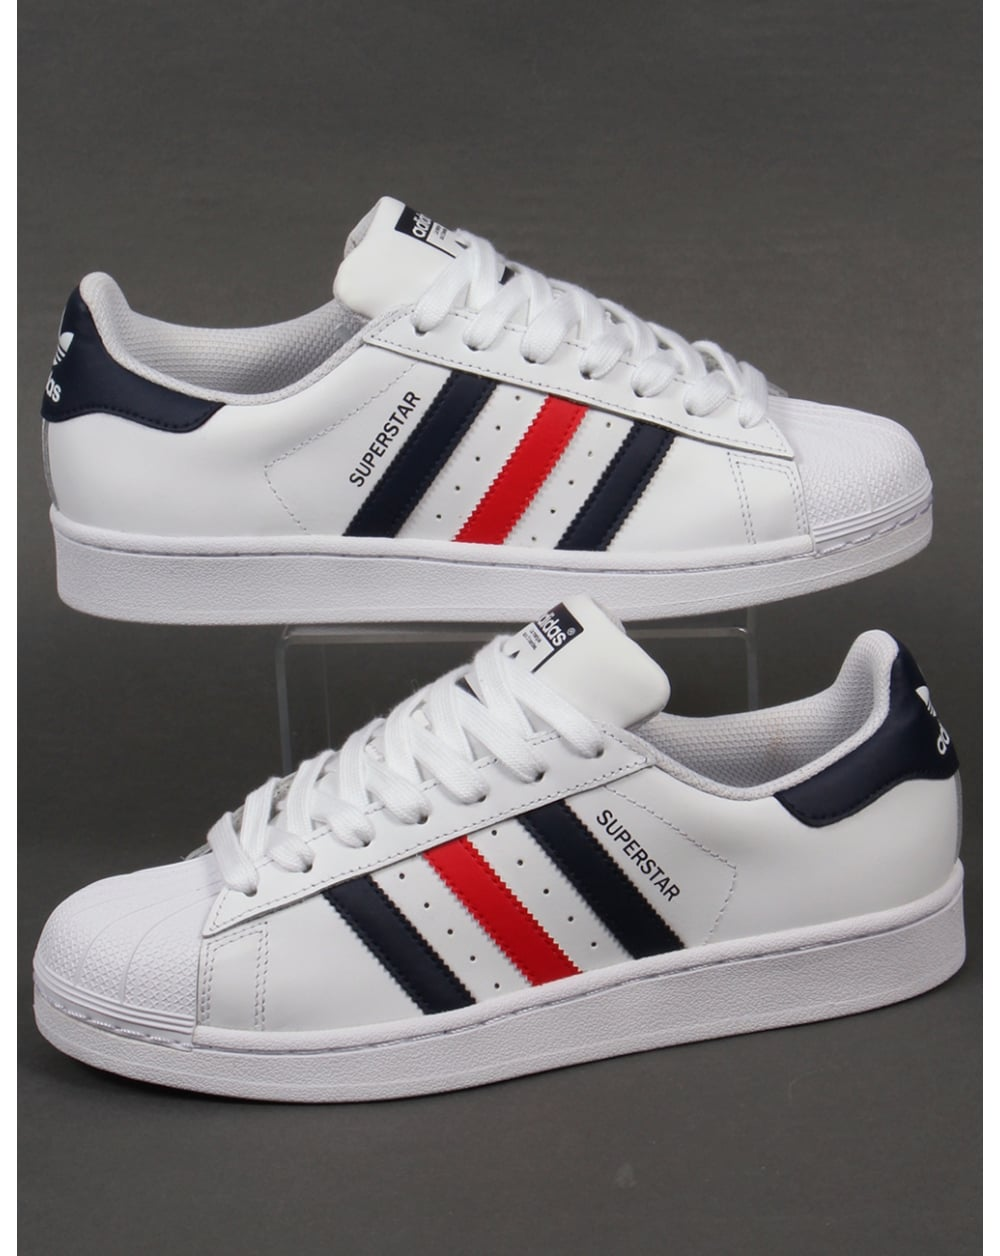 meet 1505d 25529 adidas Trainers Adidas Superstar Foundation Trainers White Red Navy